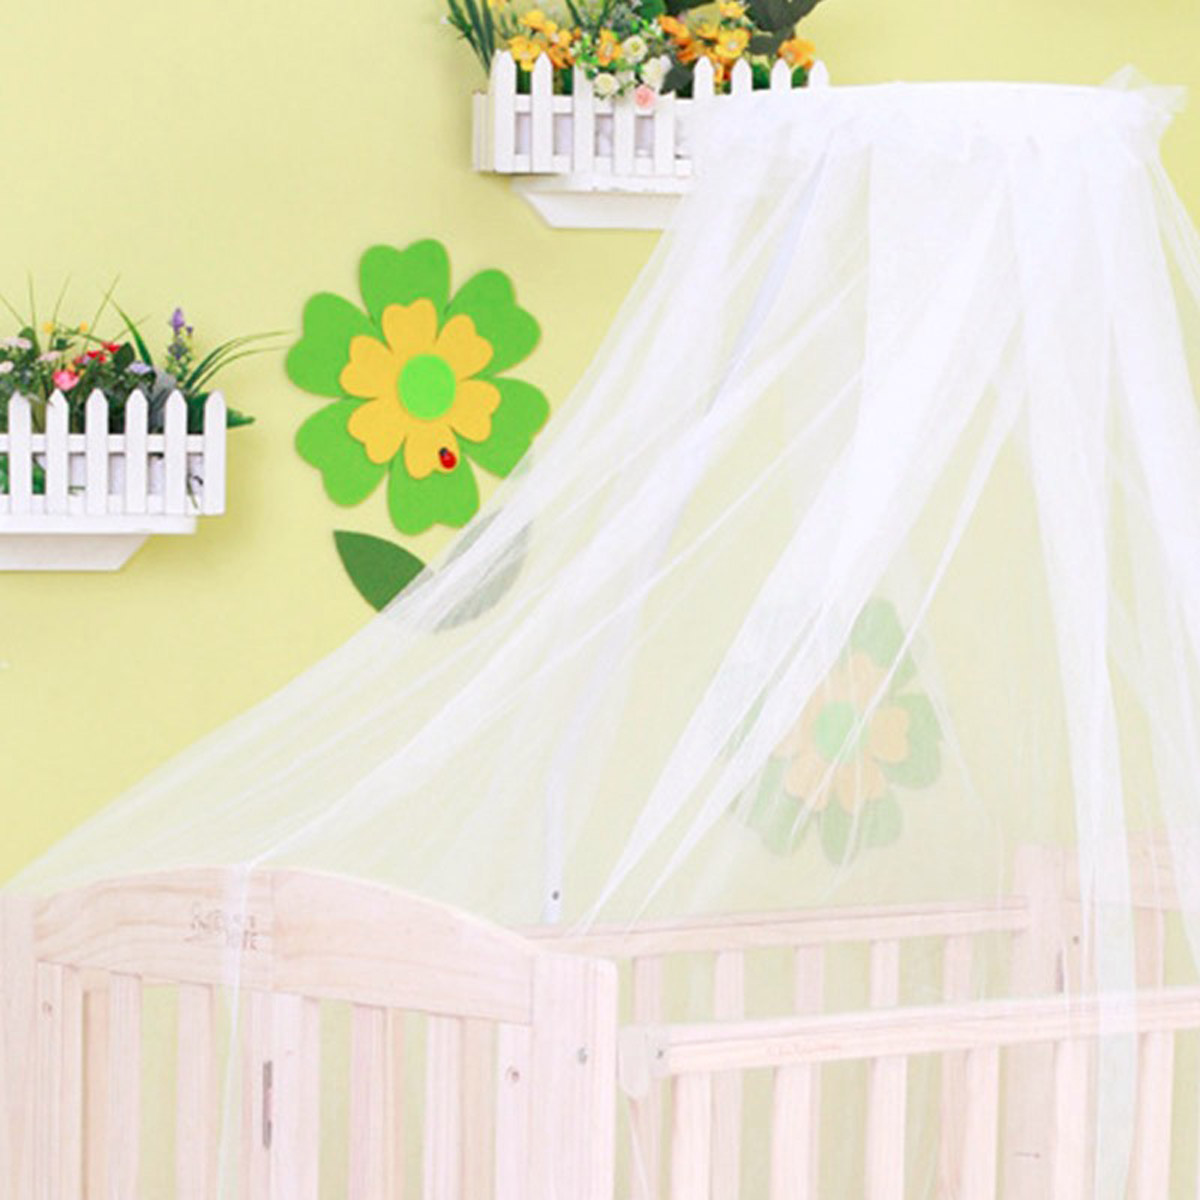 Summer Baby Bed Cradle Hung Dome Mosquito Net Toddler Newborn Infant Bedding Tent Princess Mesh Kids Portable Crib Netting White